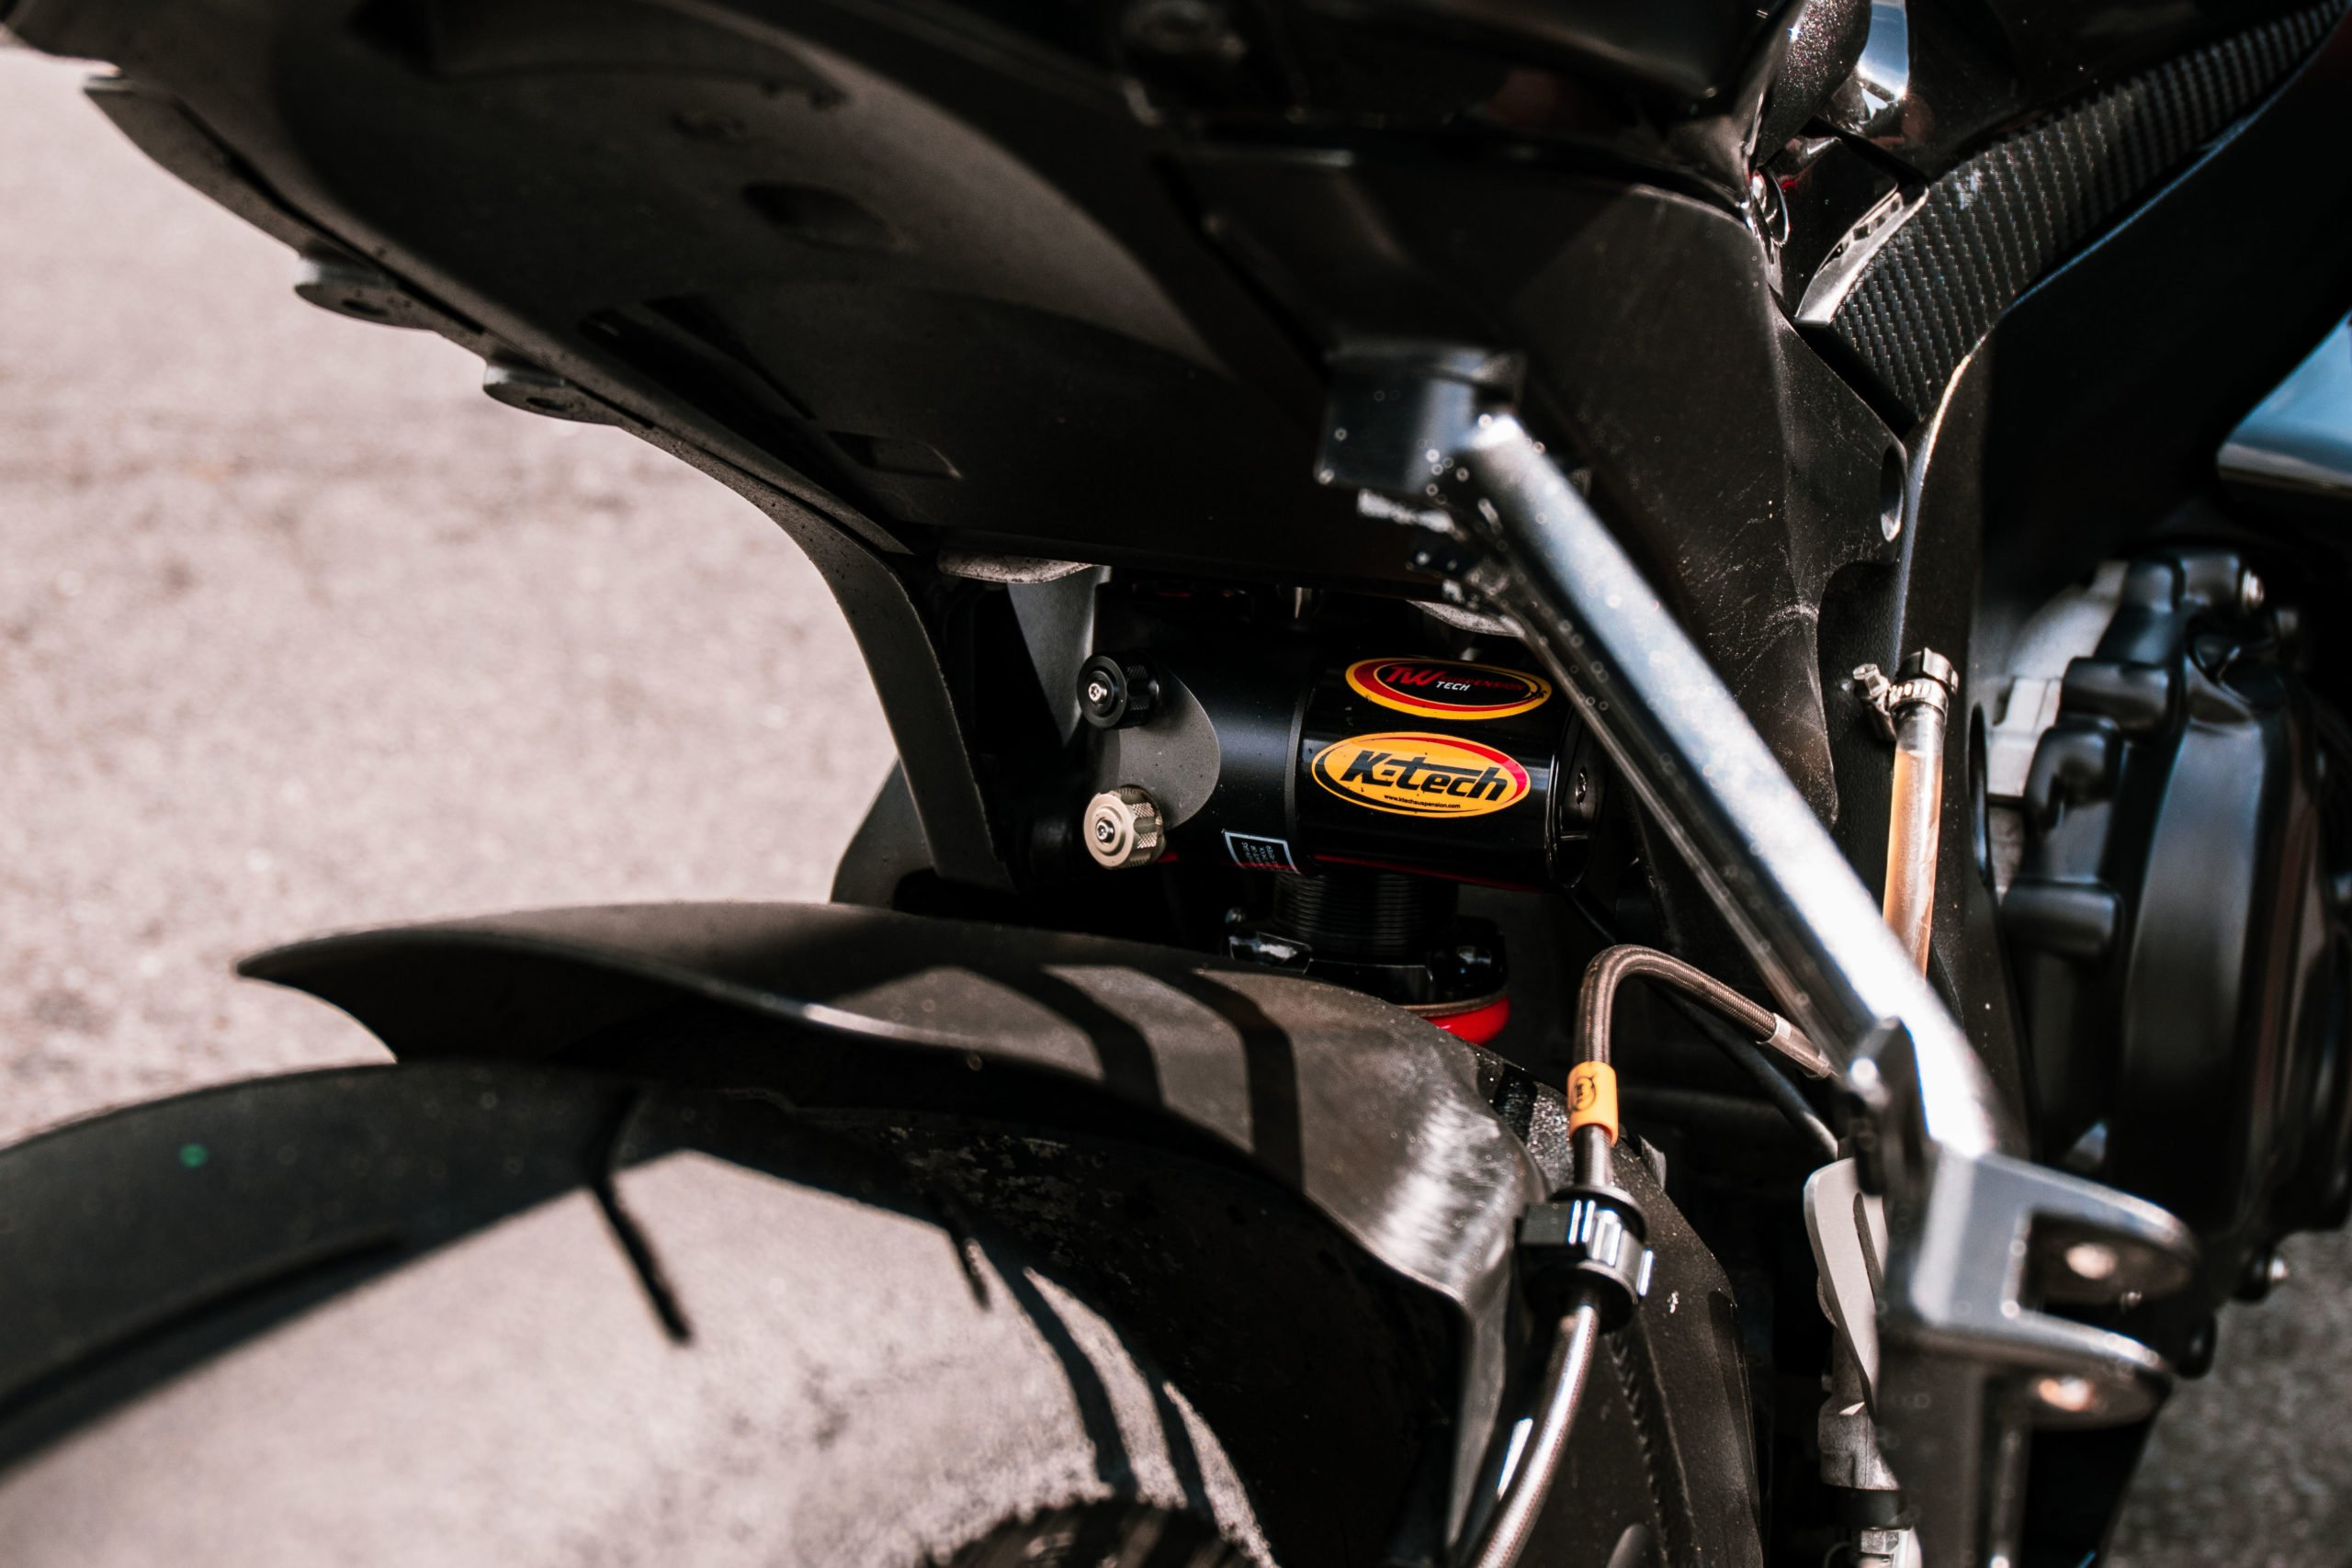 K-Tech Suspension review - 1 year on